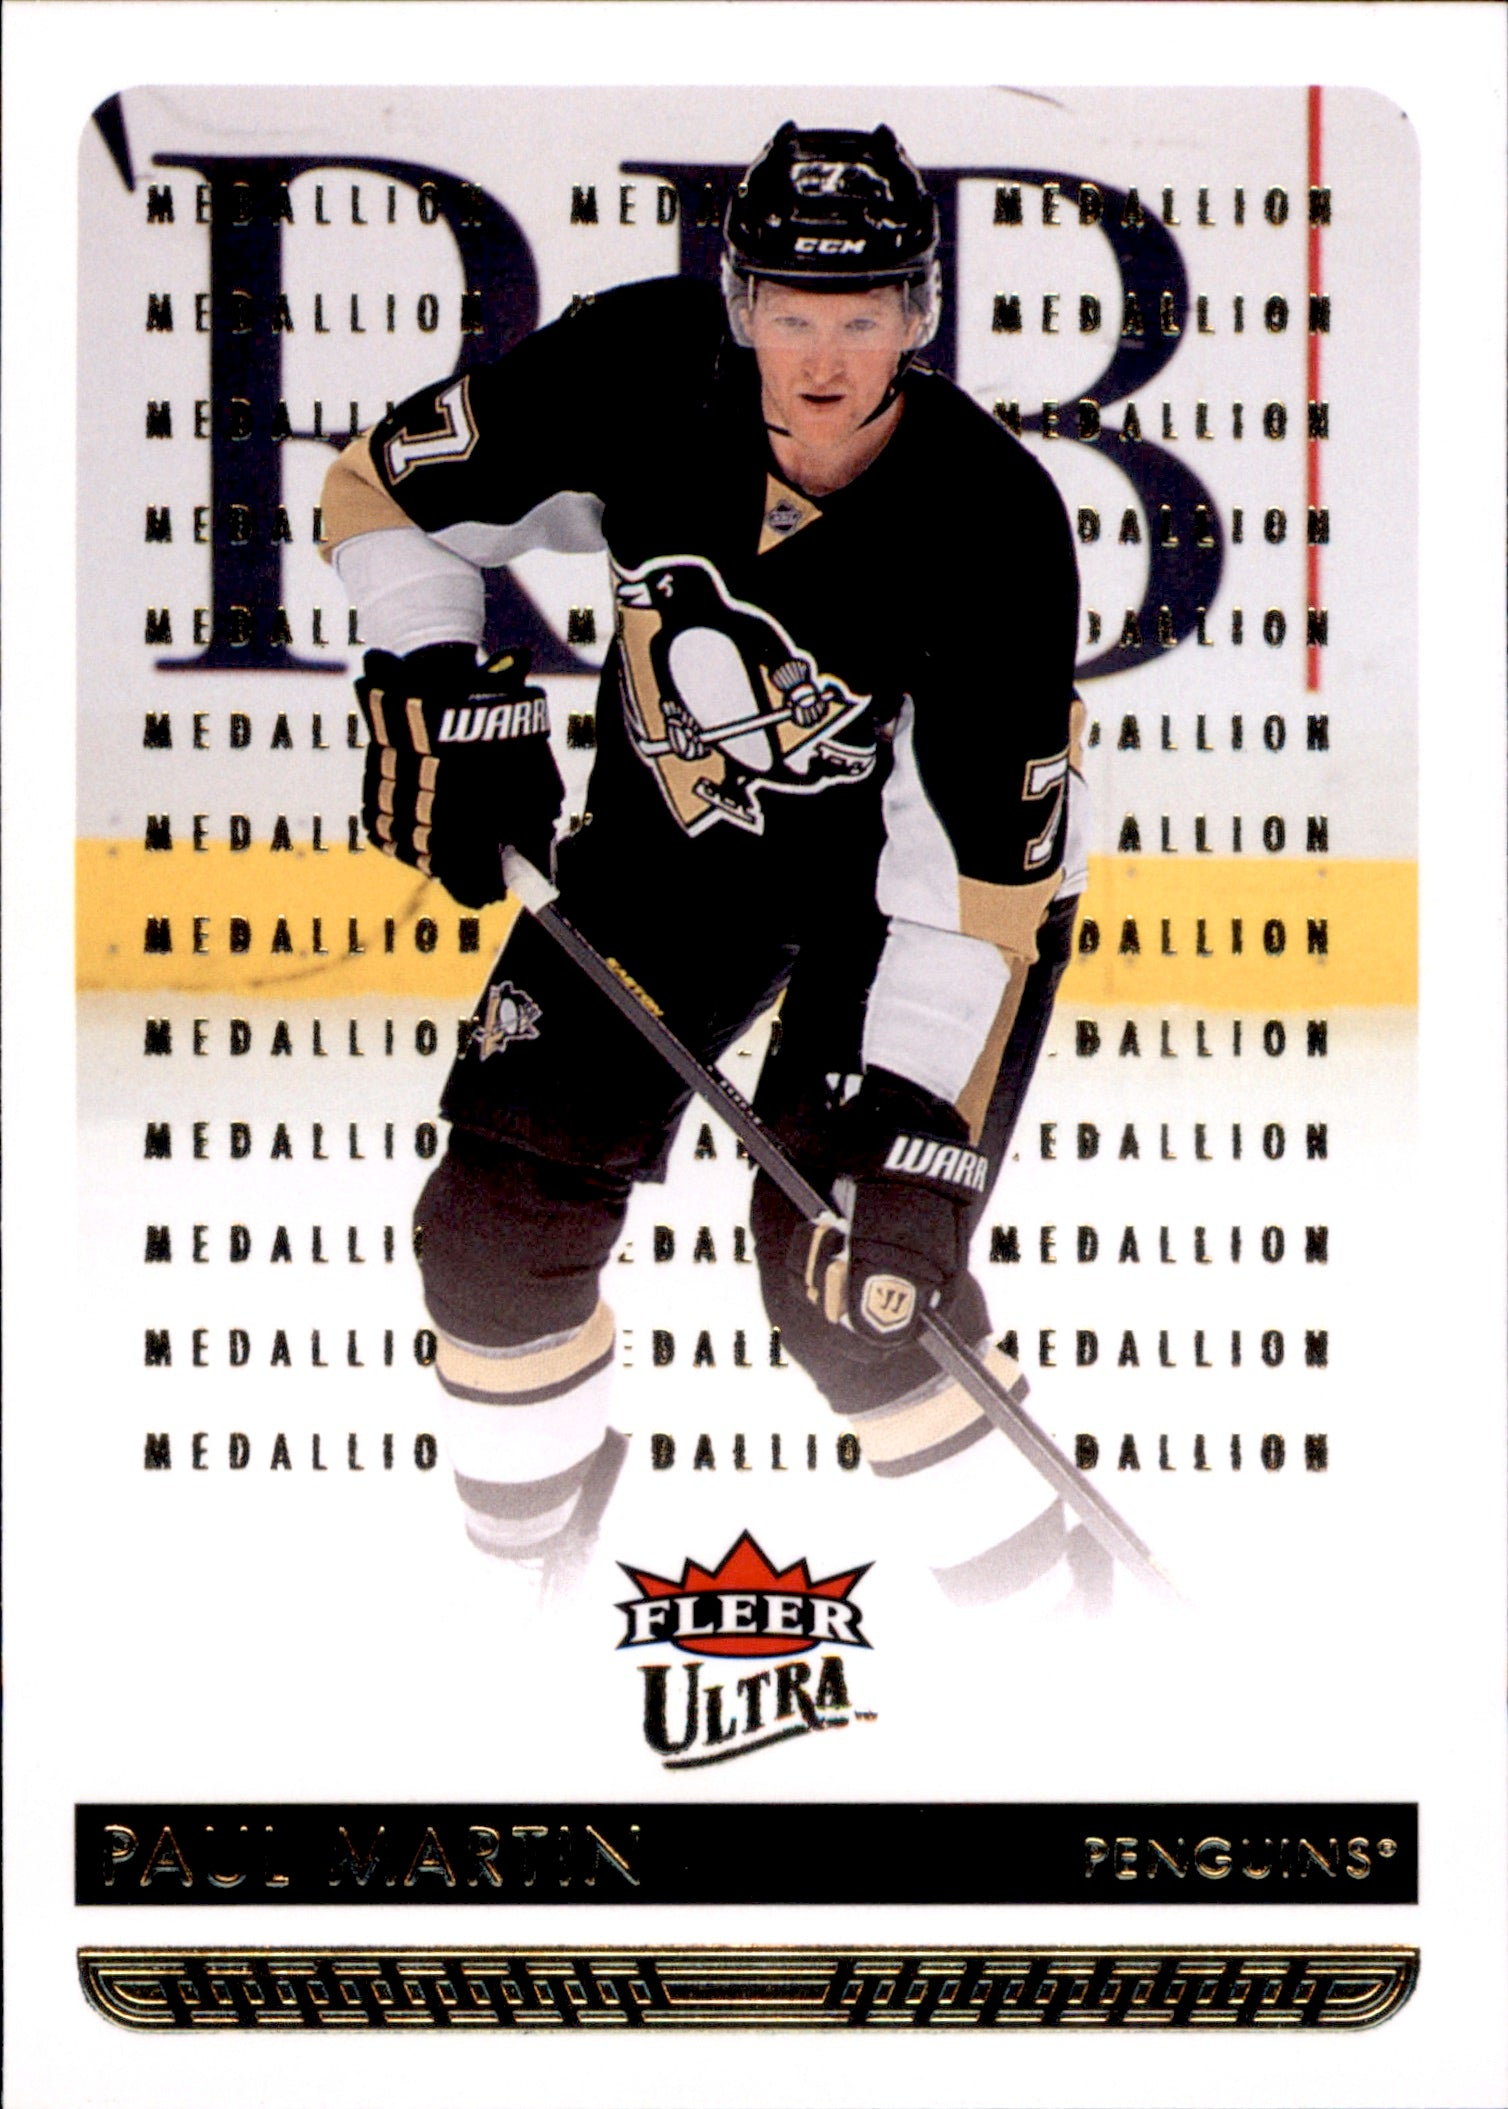 2014-15 Fleer Ultra Gold Medallion #147 Paul Martin | Eastridge Sports Cards